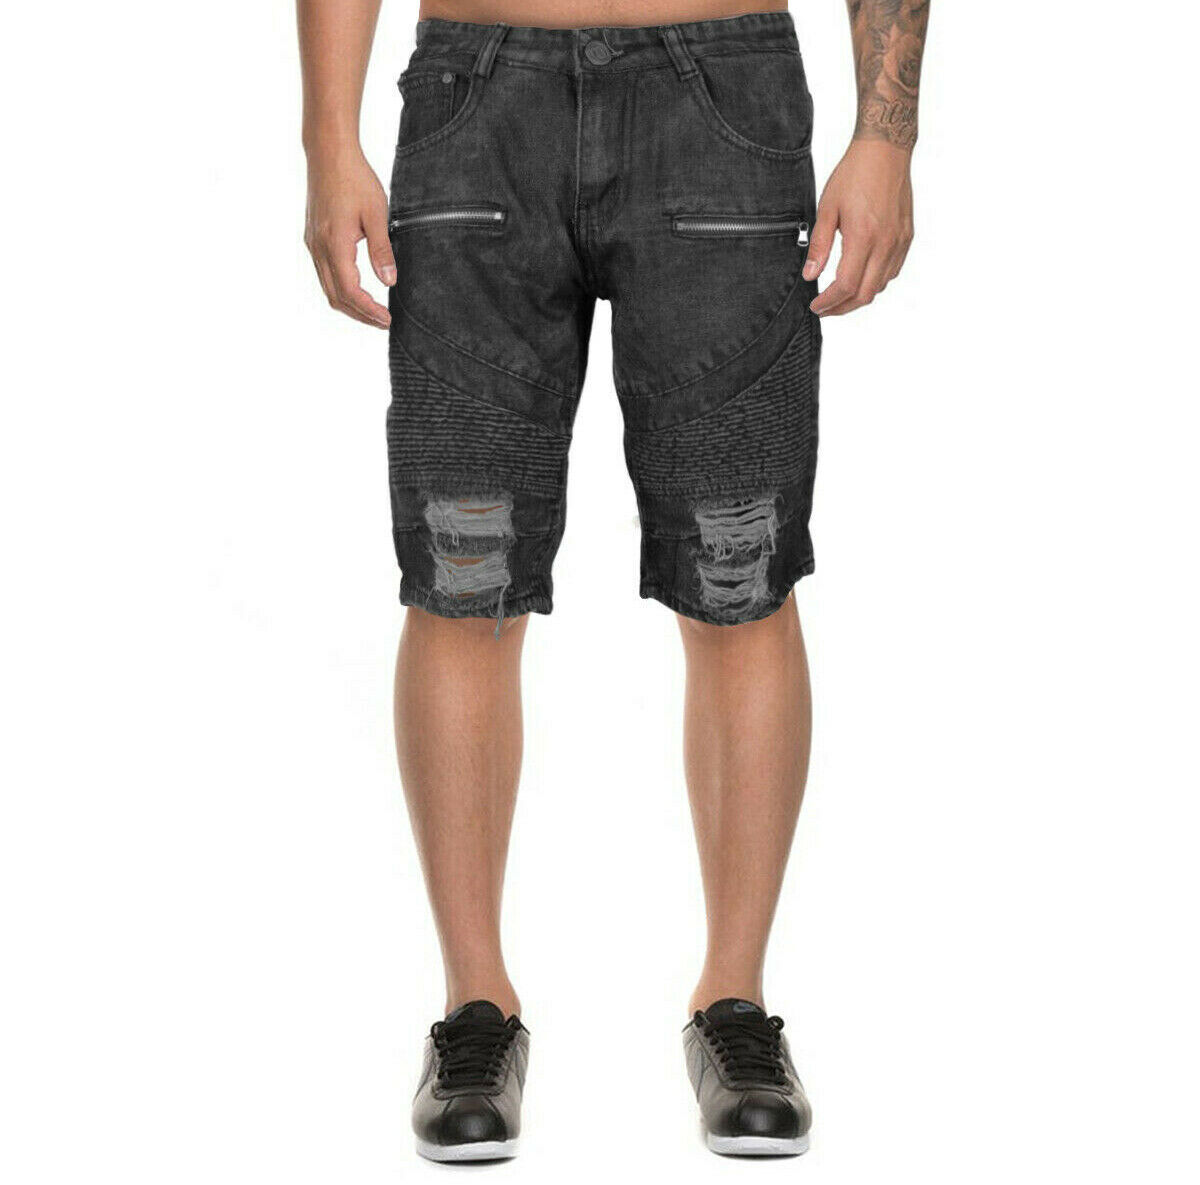 LR Scoop Men's Distressed Denim Slim Fit Moto Skinny Jean Shorts w/ Defect - 34